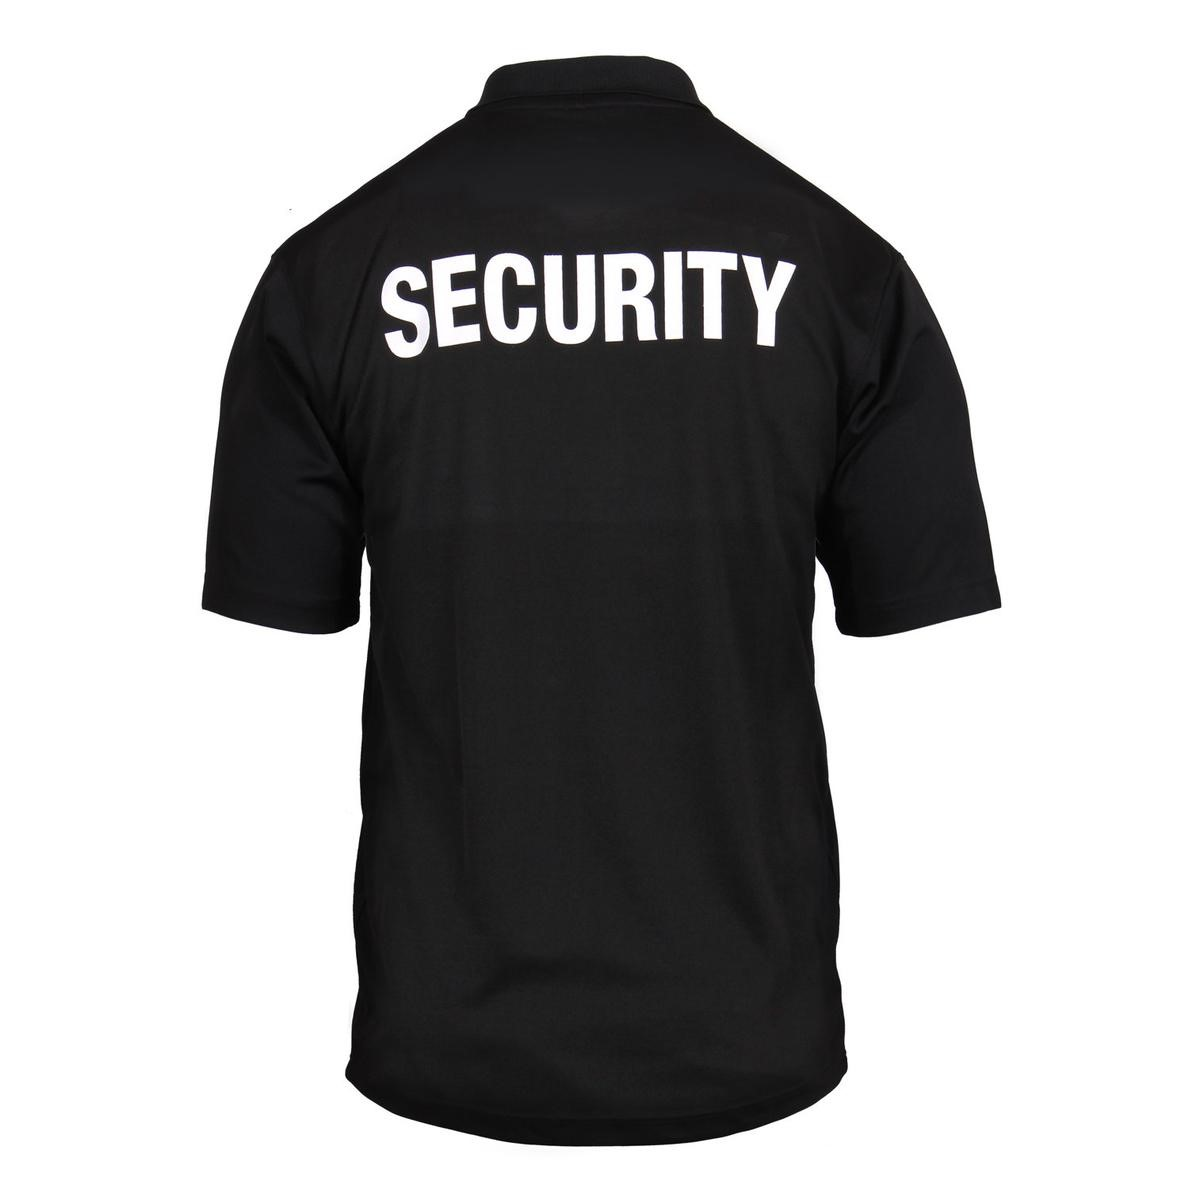 Rothco - Rothco Moisture Wicking Security Performance Polo Shirt With  Badge 33e38127627